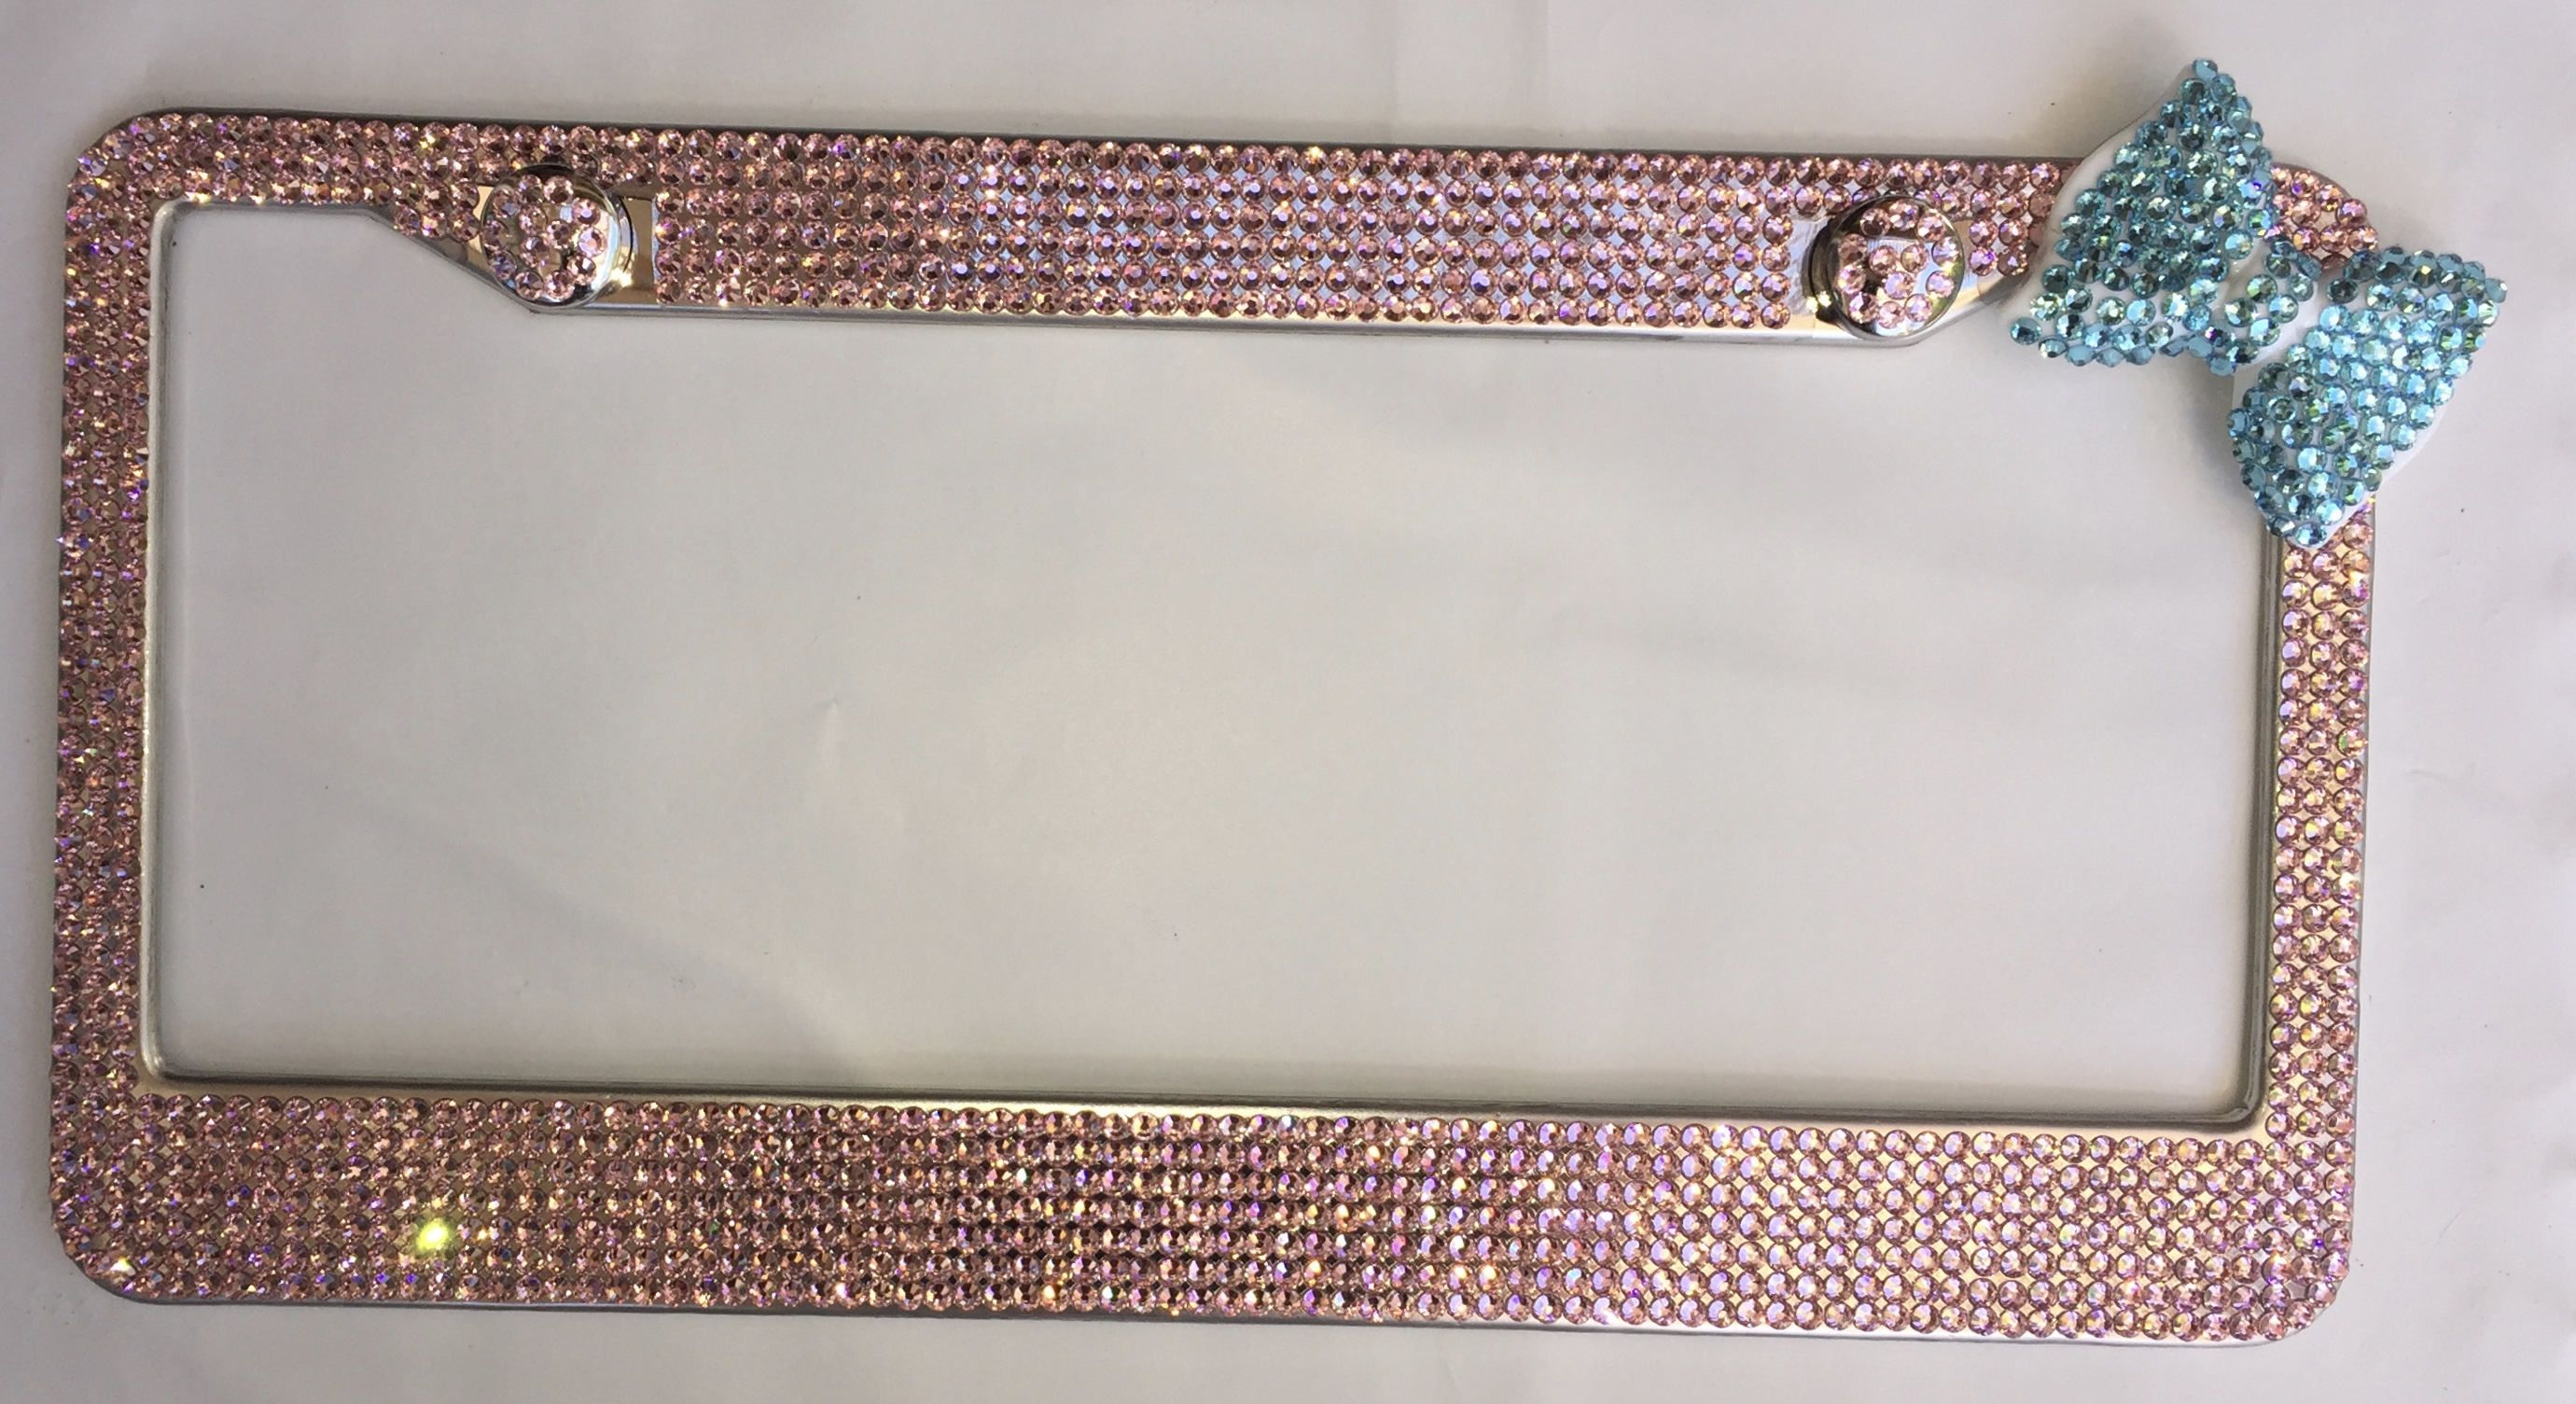 Colorful Bling Licence Plate Frames Ideas - Picture Frame Ideas ...